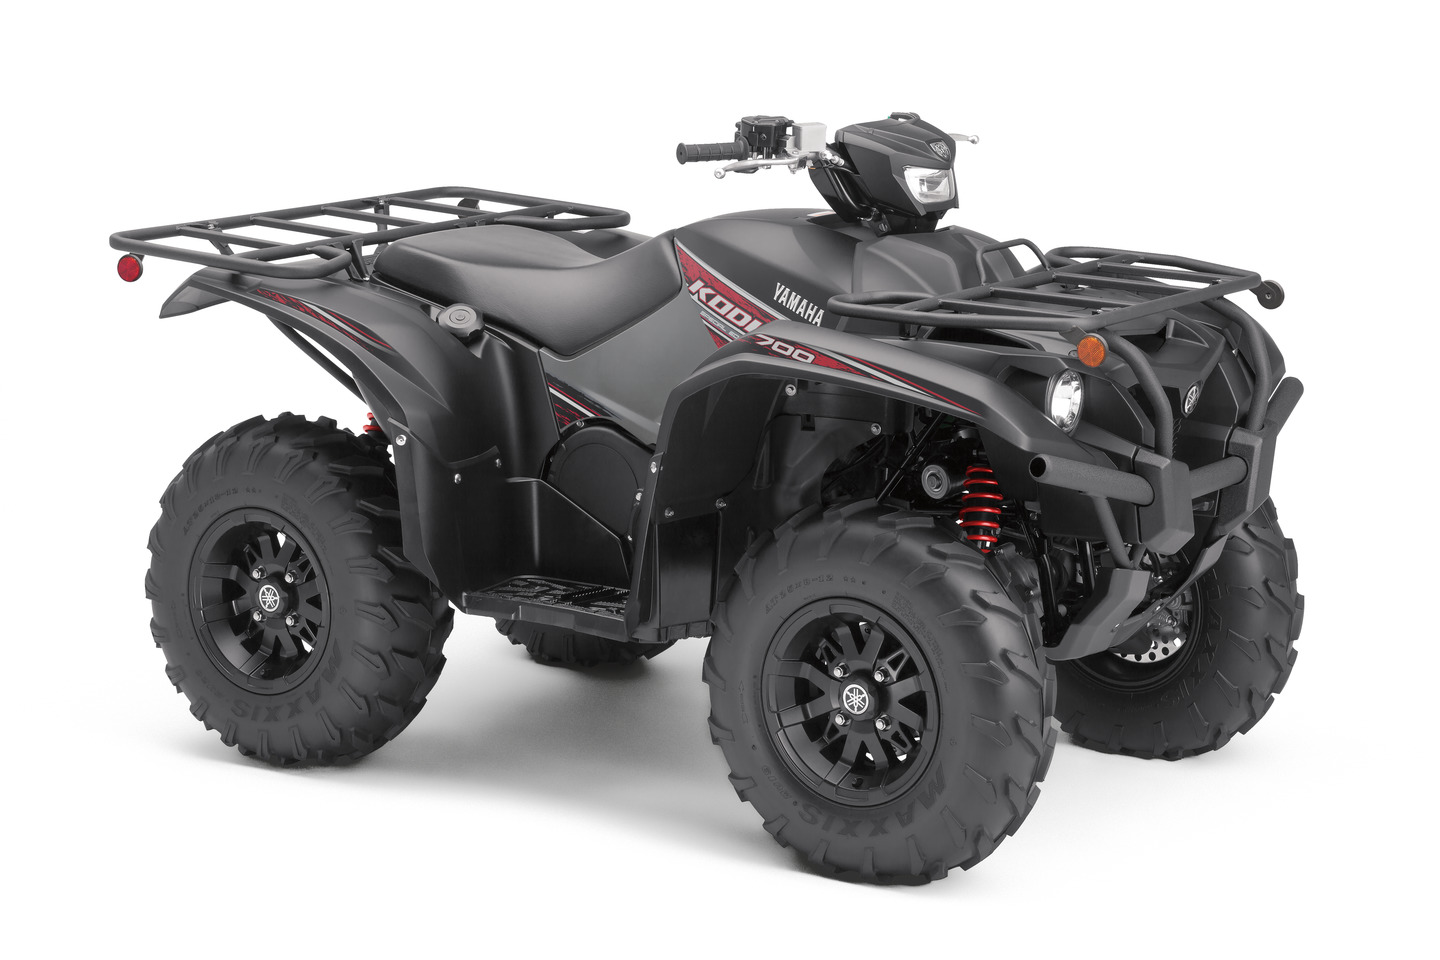 2019 Yamaha Kodiak 700 SE in Tactical Black